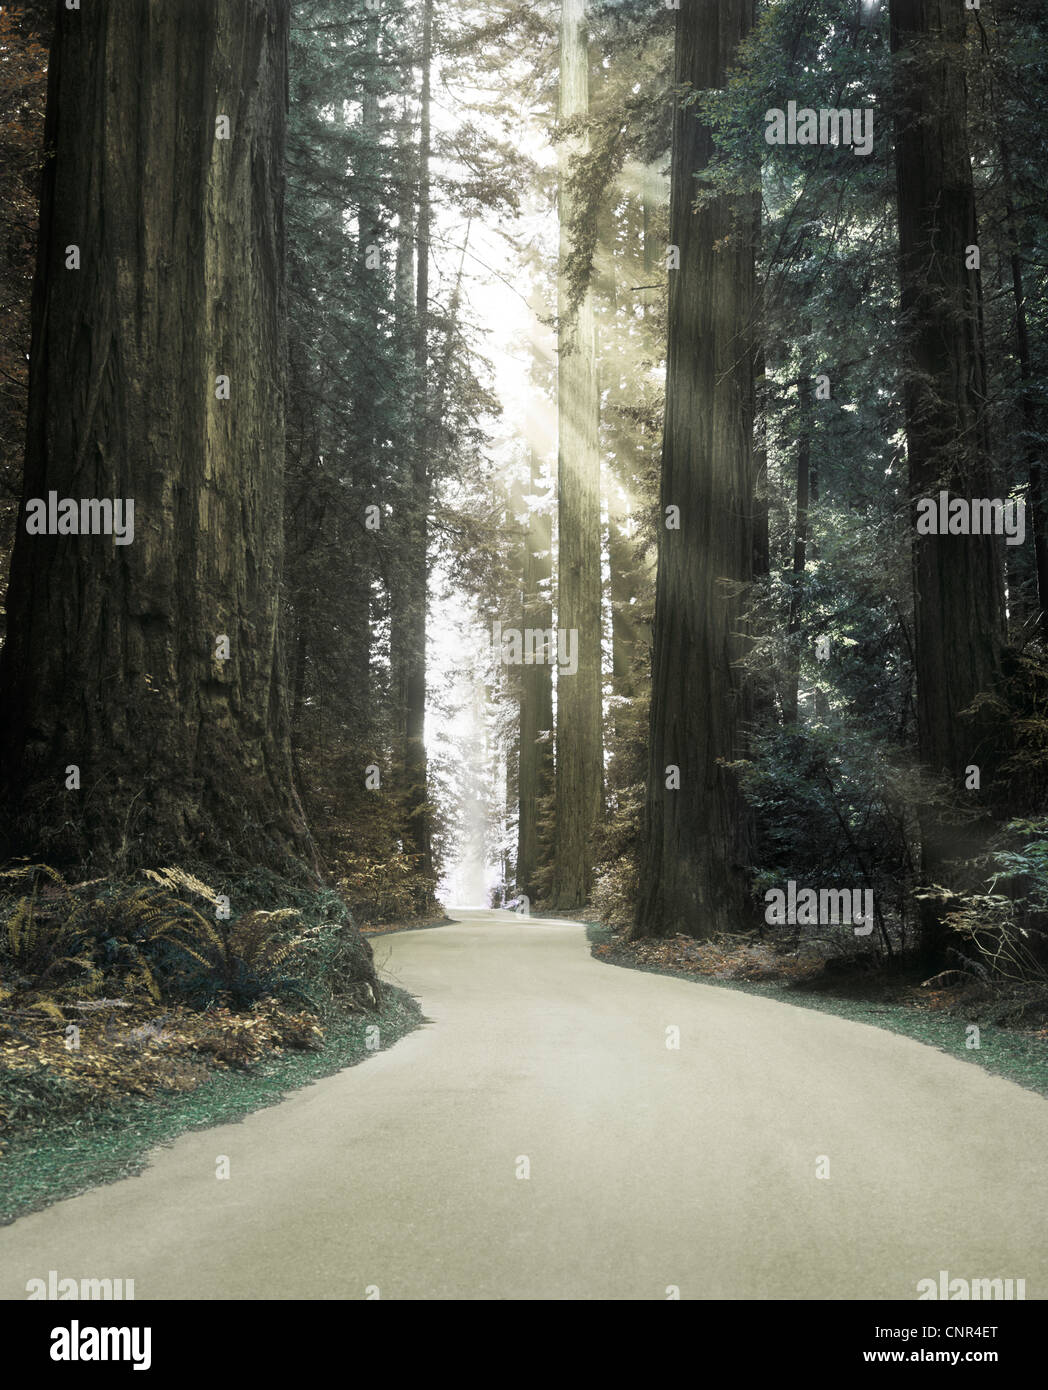 Pathway through enchanted Redwood forest - Stock Image